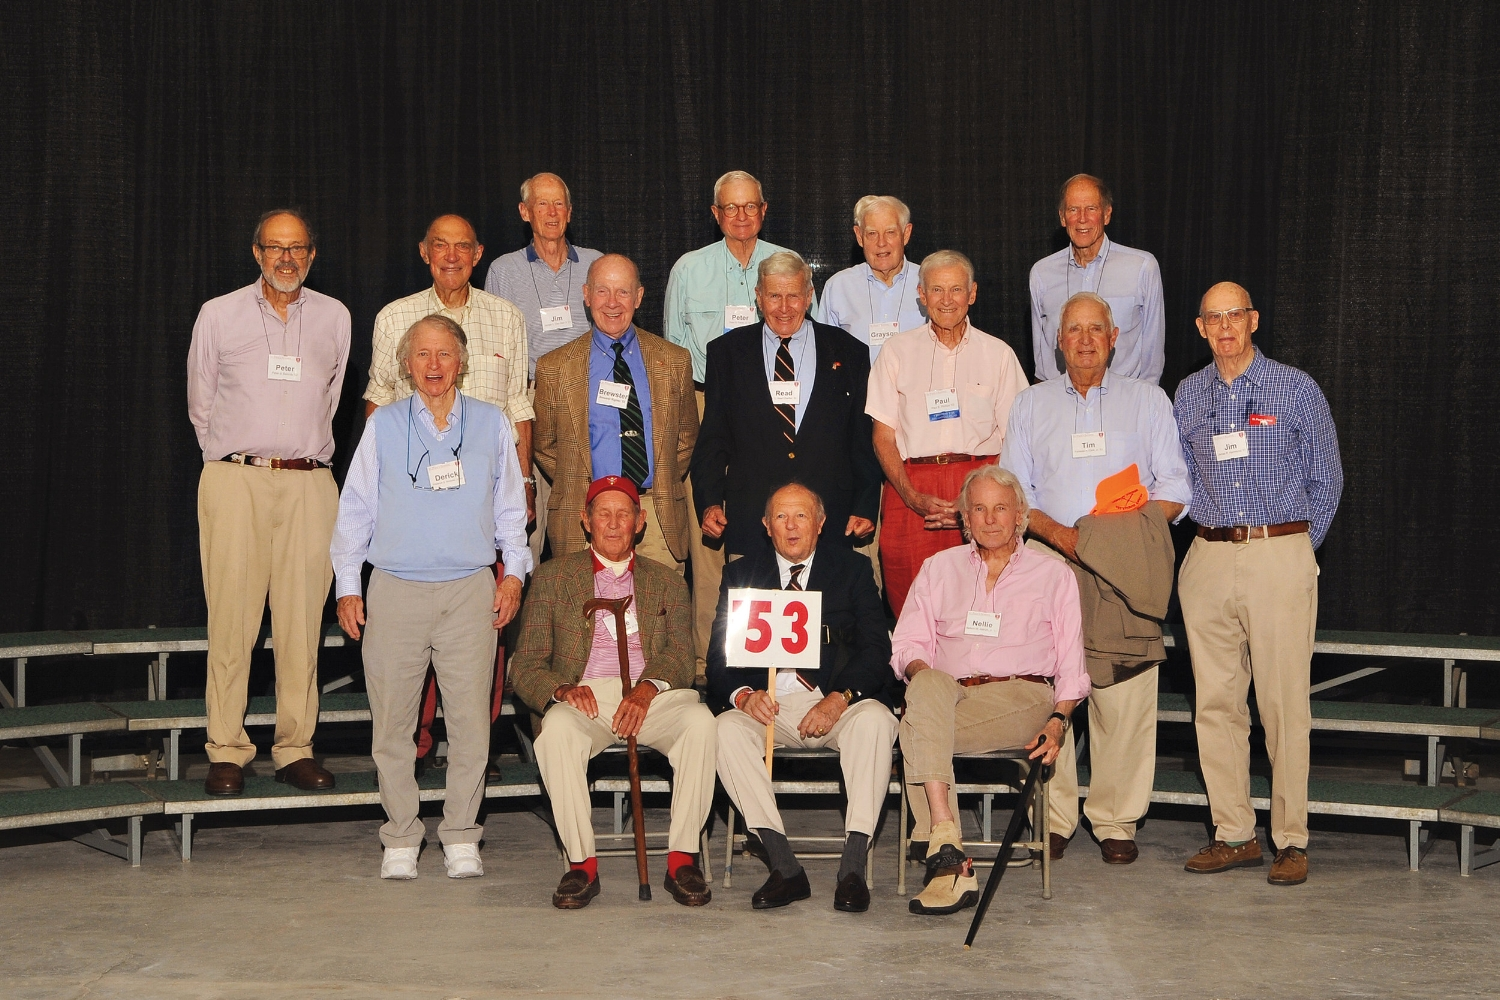 (L. to r.), row 1: Pete Bostwick, Wright Olney, Nellie Aldrich; row 2: Derick Nicholas, Tim Clark, Jim Hammond; row 3: Peter Swords, Ben Williams, Brewster Righter, Read Charlton, Paul Phillips; row 4: Jim Van Alen, Peter Paine, Grayson Murphy, and Norm Marsh.